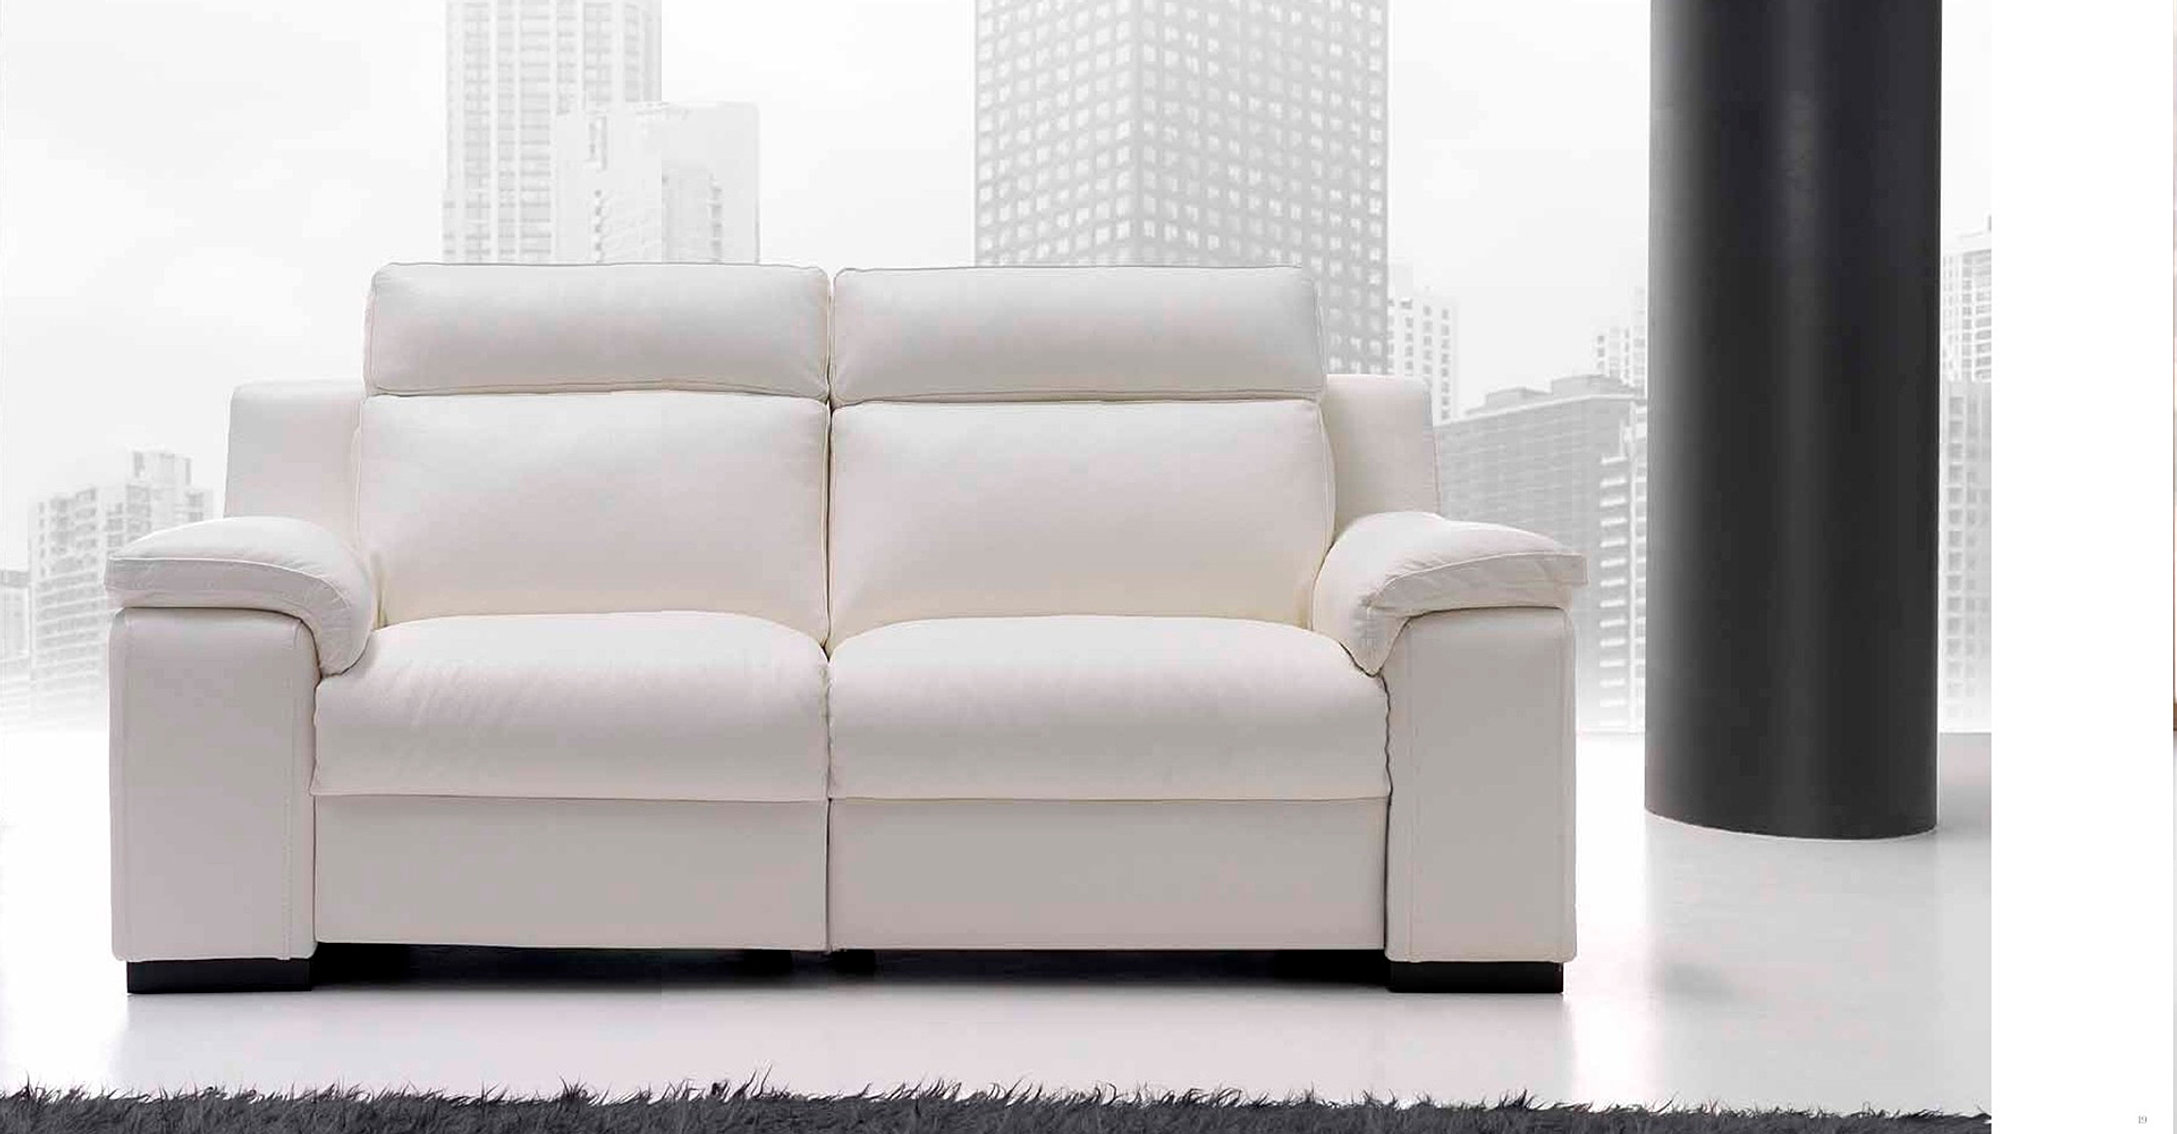 Sofas de dise o muebles monen madrid for Muebles de diseno madrid